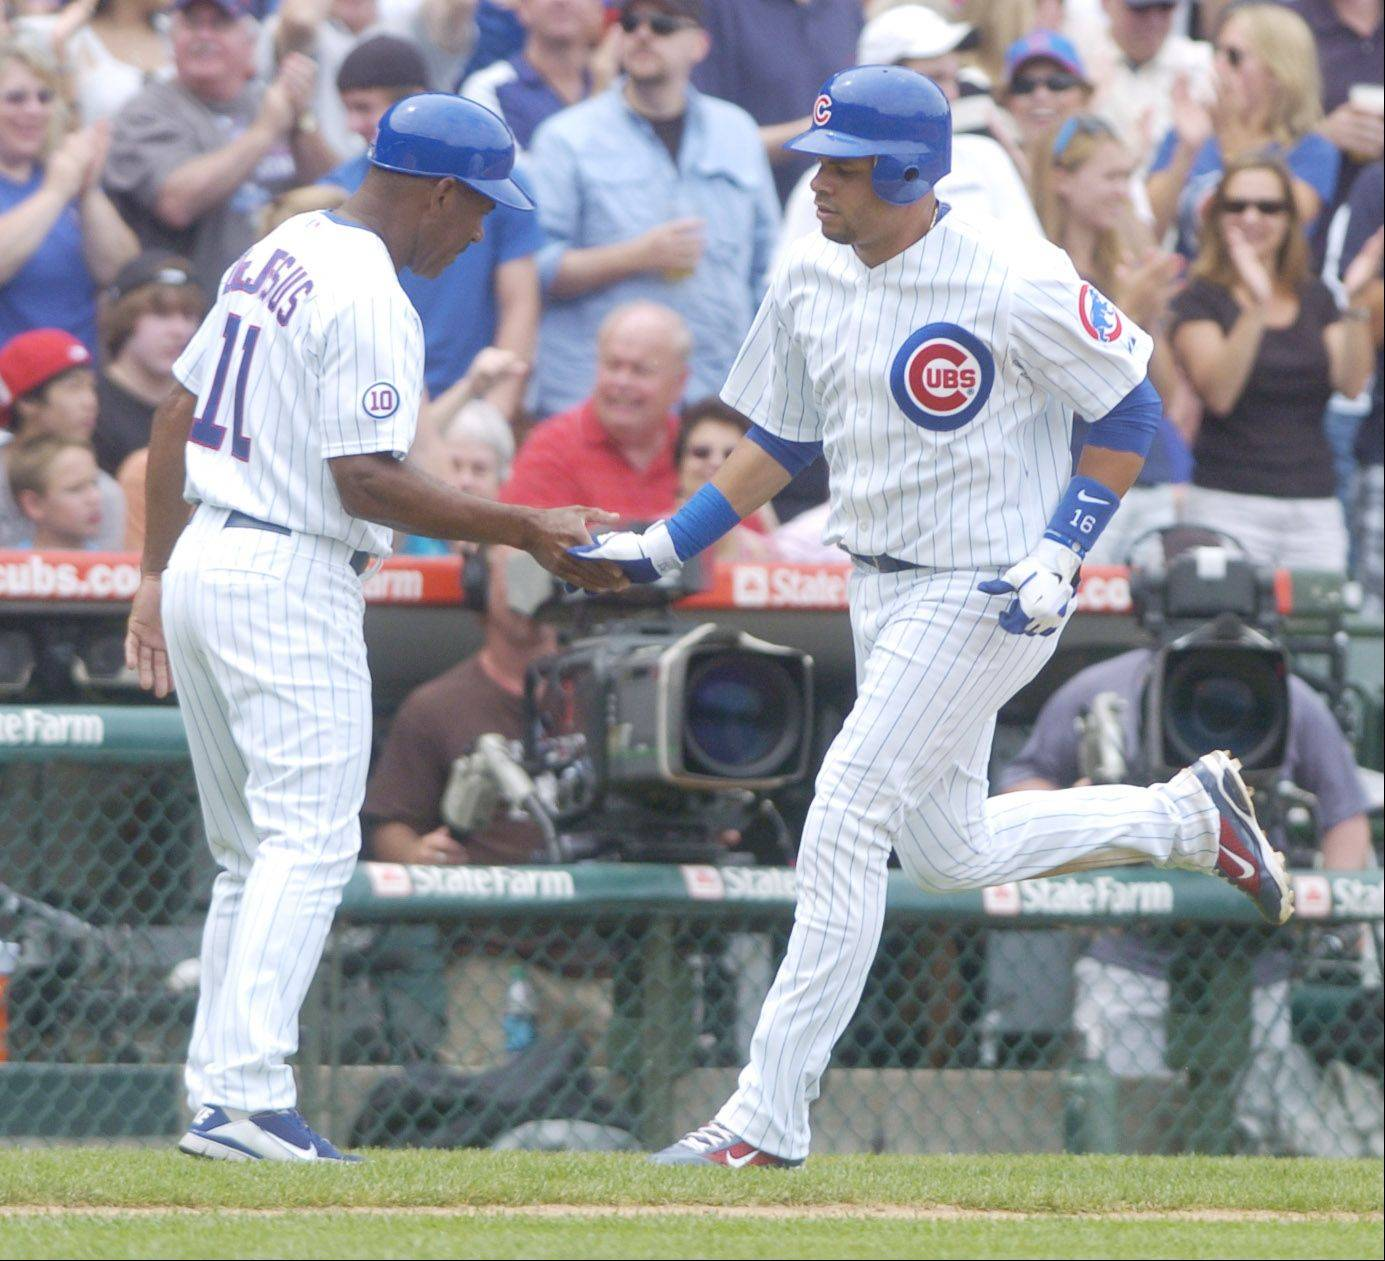 Aramis Ramirez of the Cubs is congratulated by third base coach Ivan DeJesus after his fourth inning home run during Sunday's game against the White Sox at Wrigley Field.